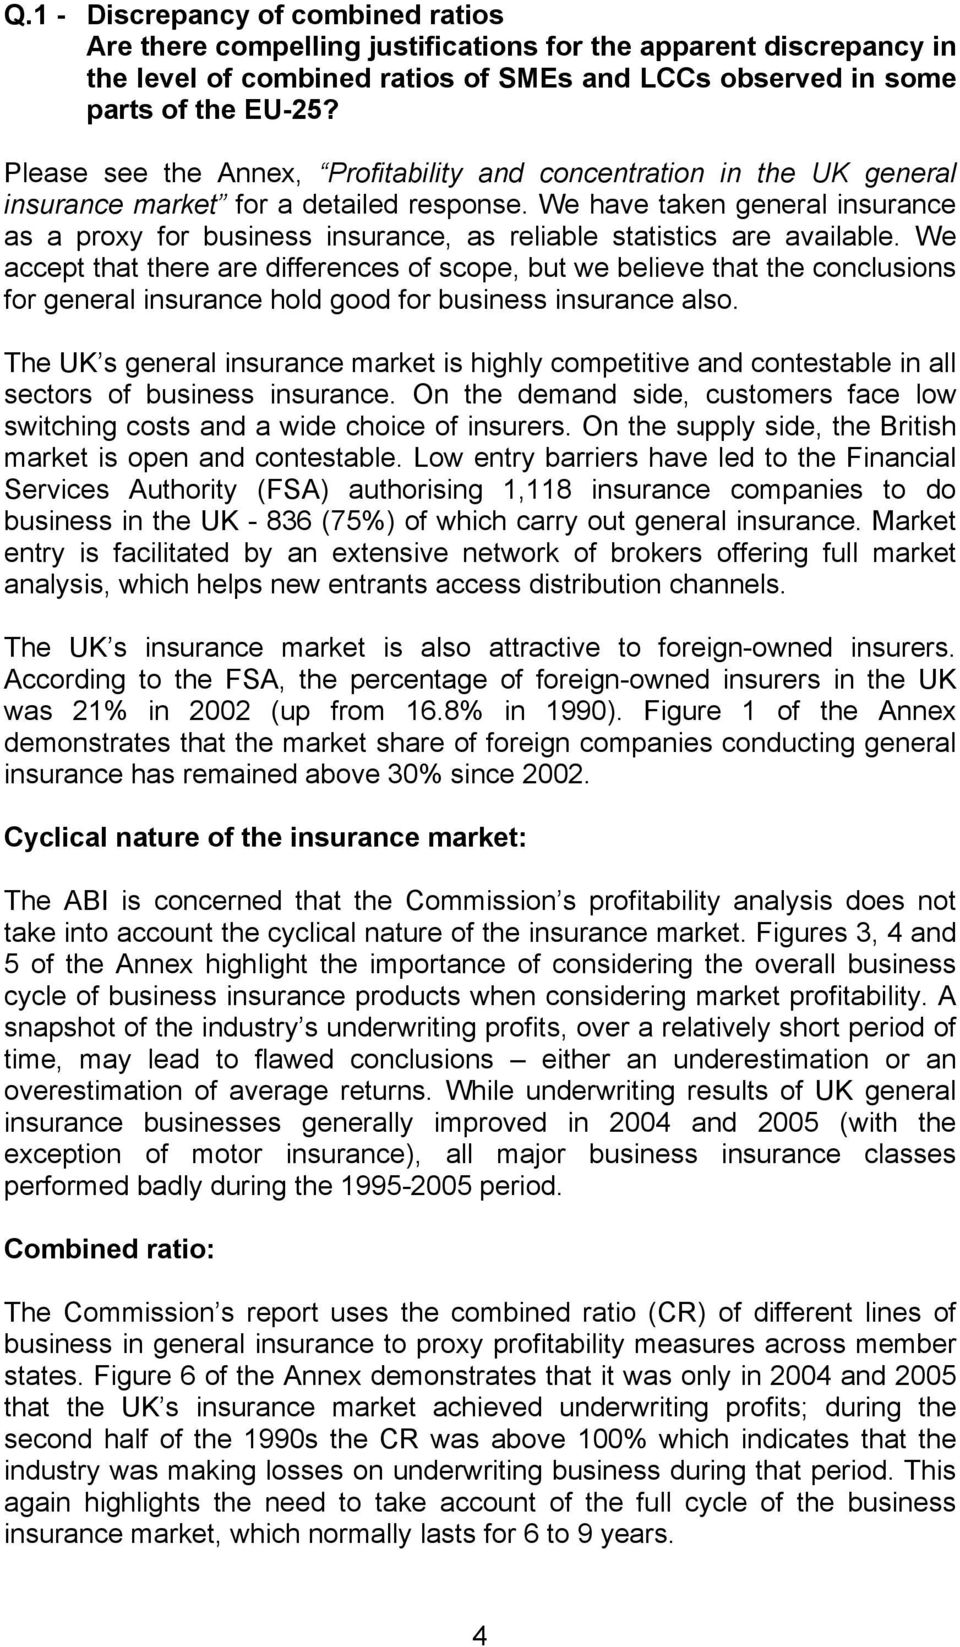 We have taken general insurance as a proxy for business insurance, as reliable statistics are available.